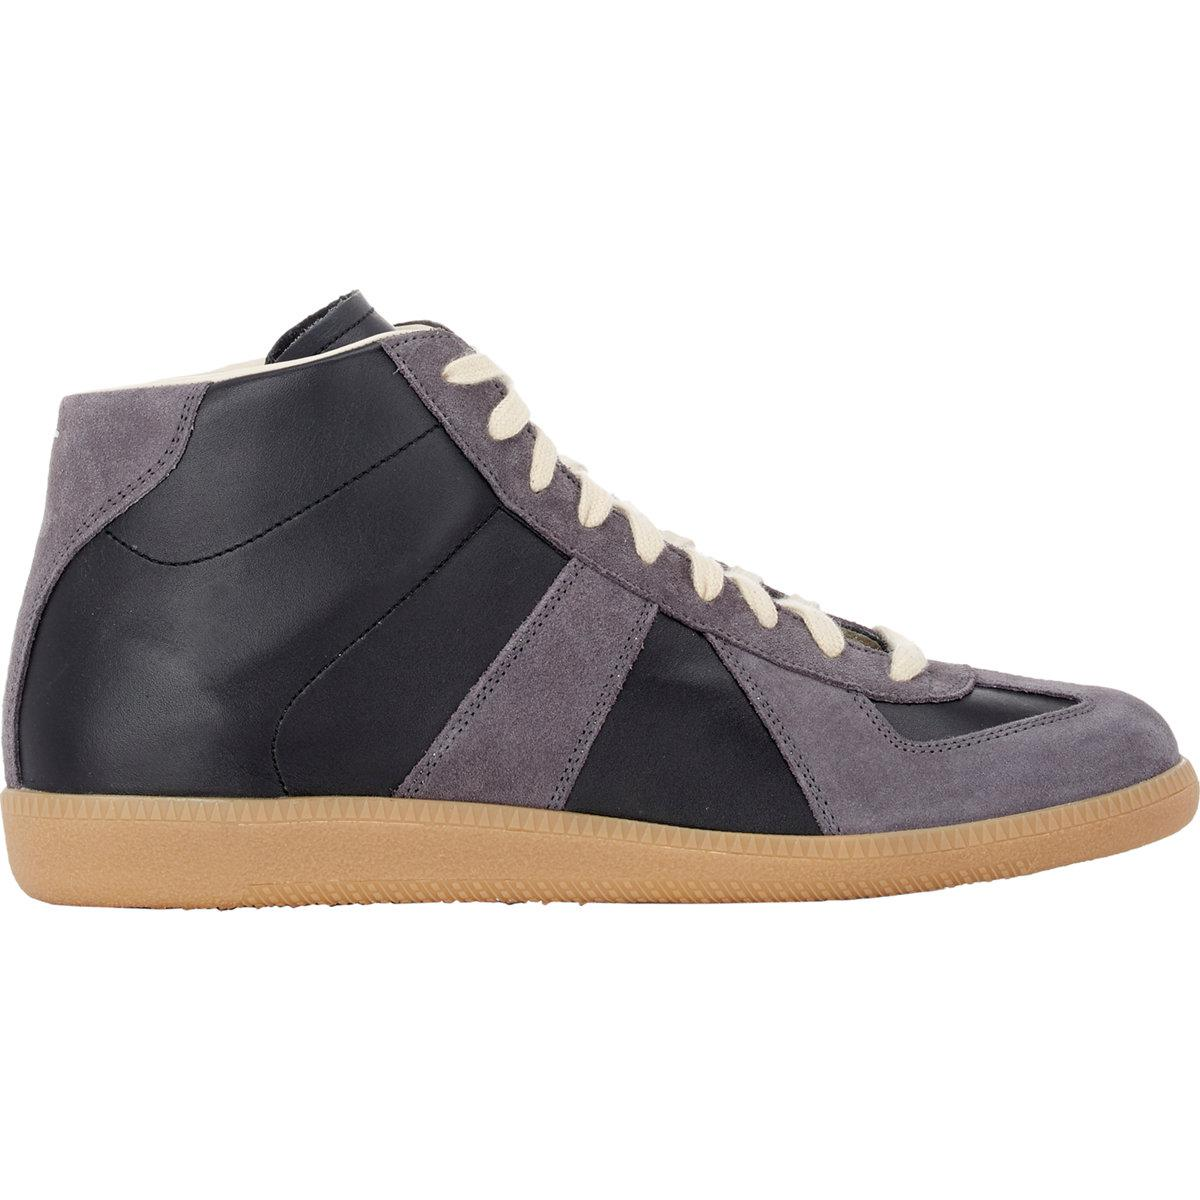 Black and Brown Classic Mid Sneakers Maison Martin Margiela yKIqZzKHU